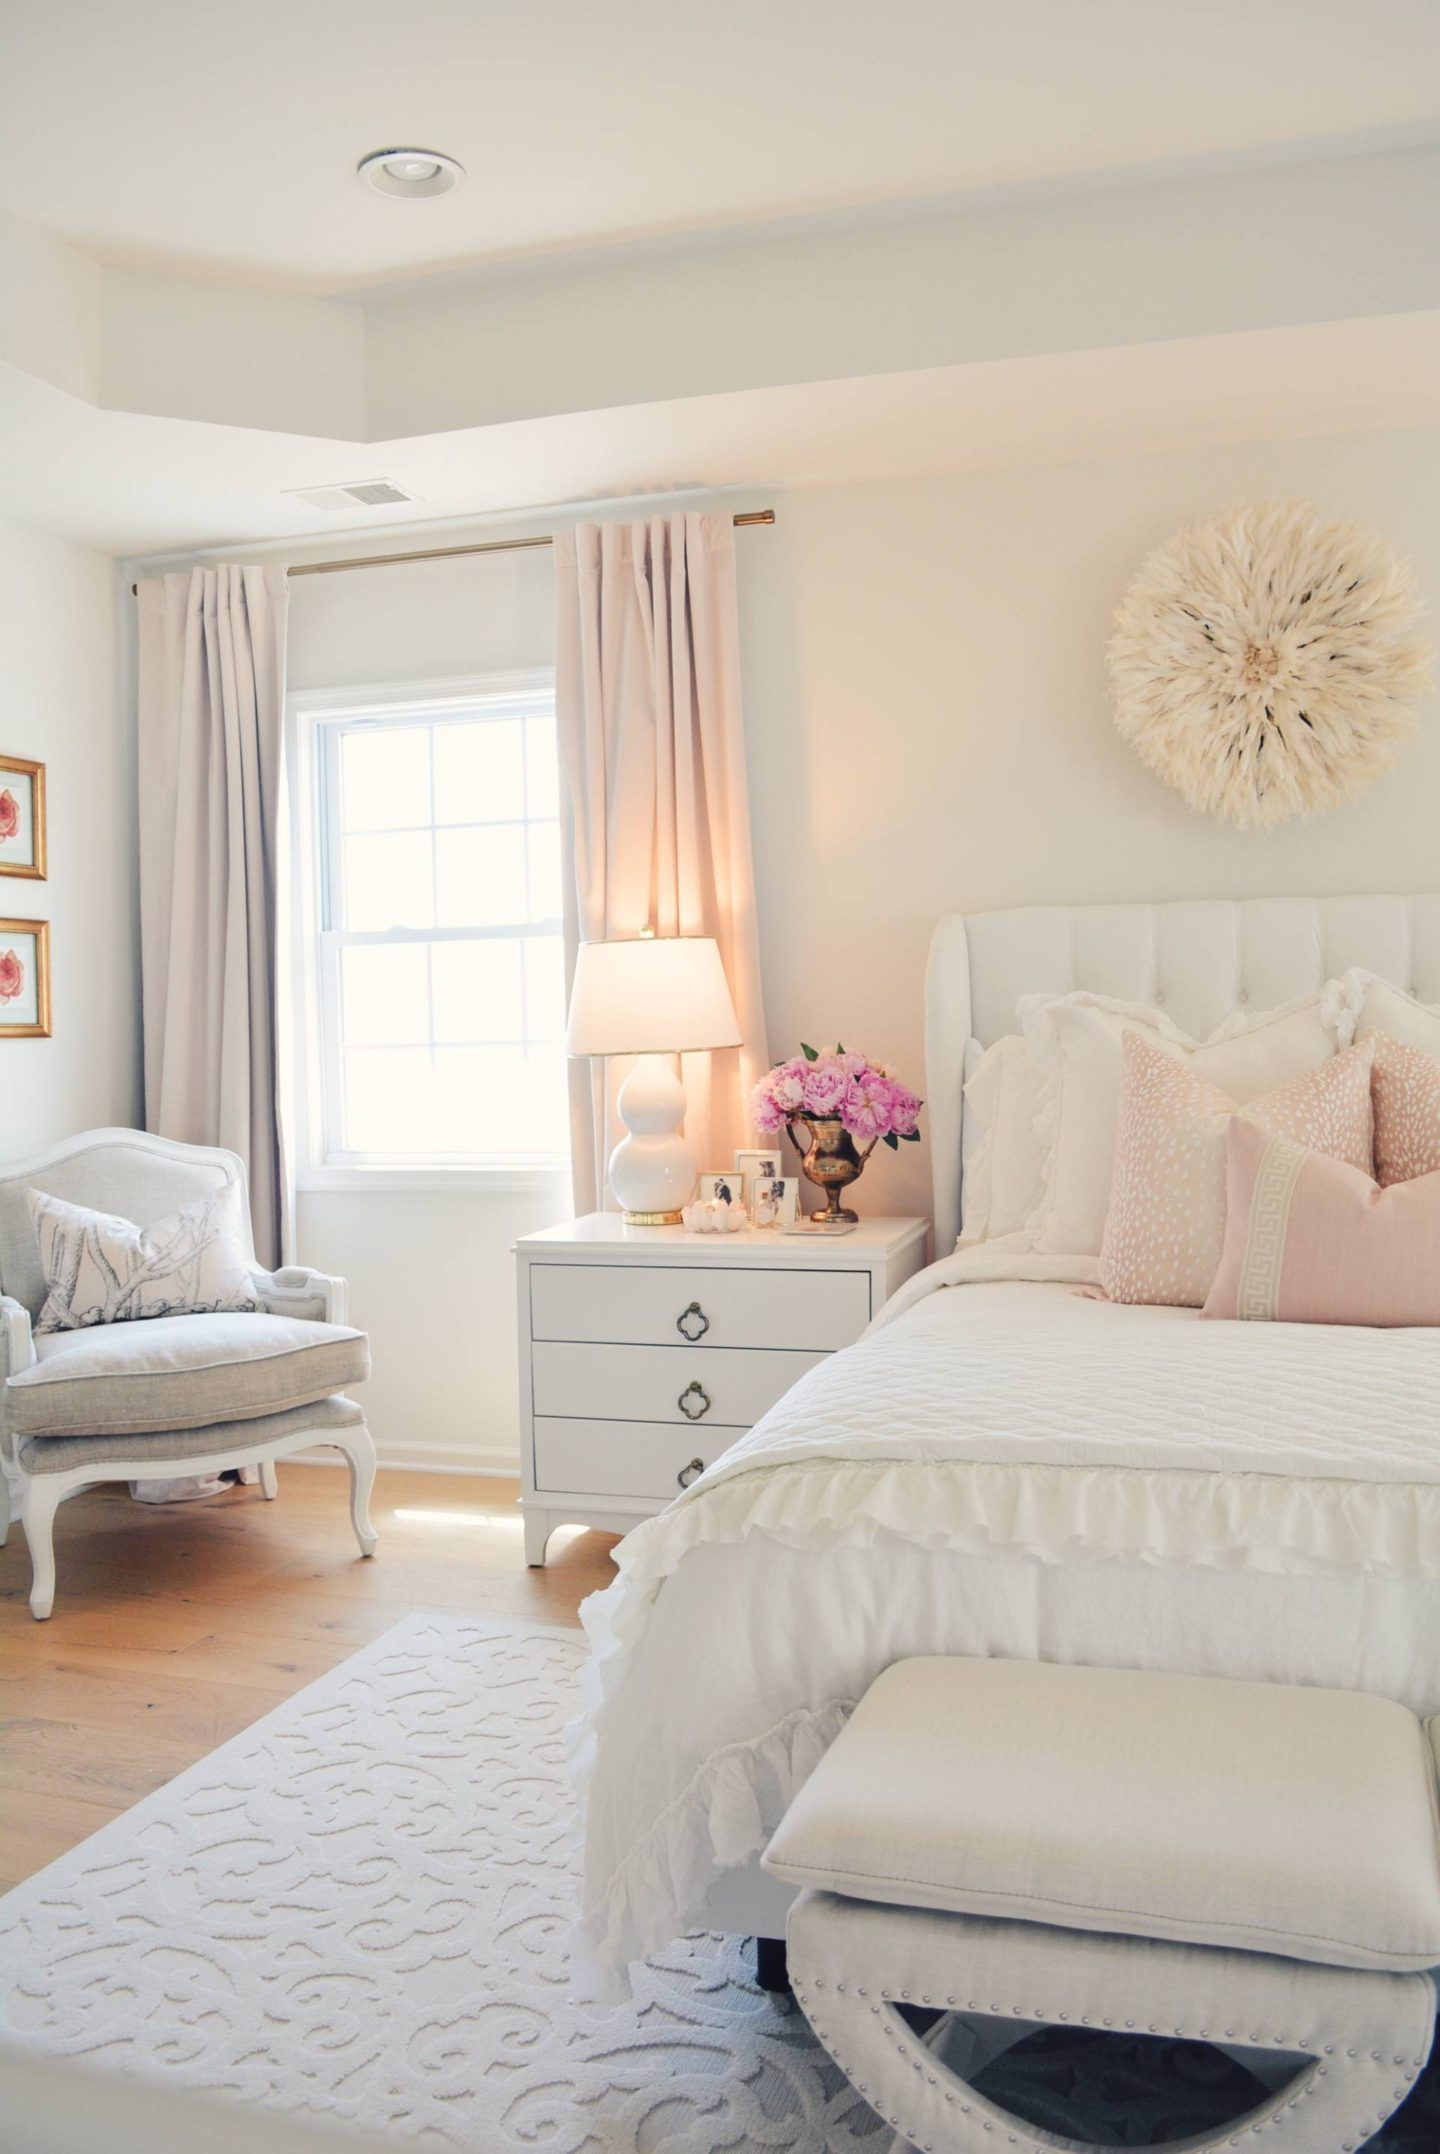 Elegant Romantic Bedrooms: Elegant White Master Bedroom & Blush Decorative Pillows